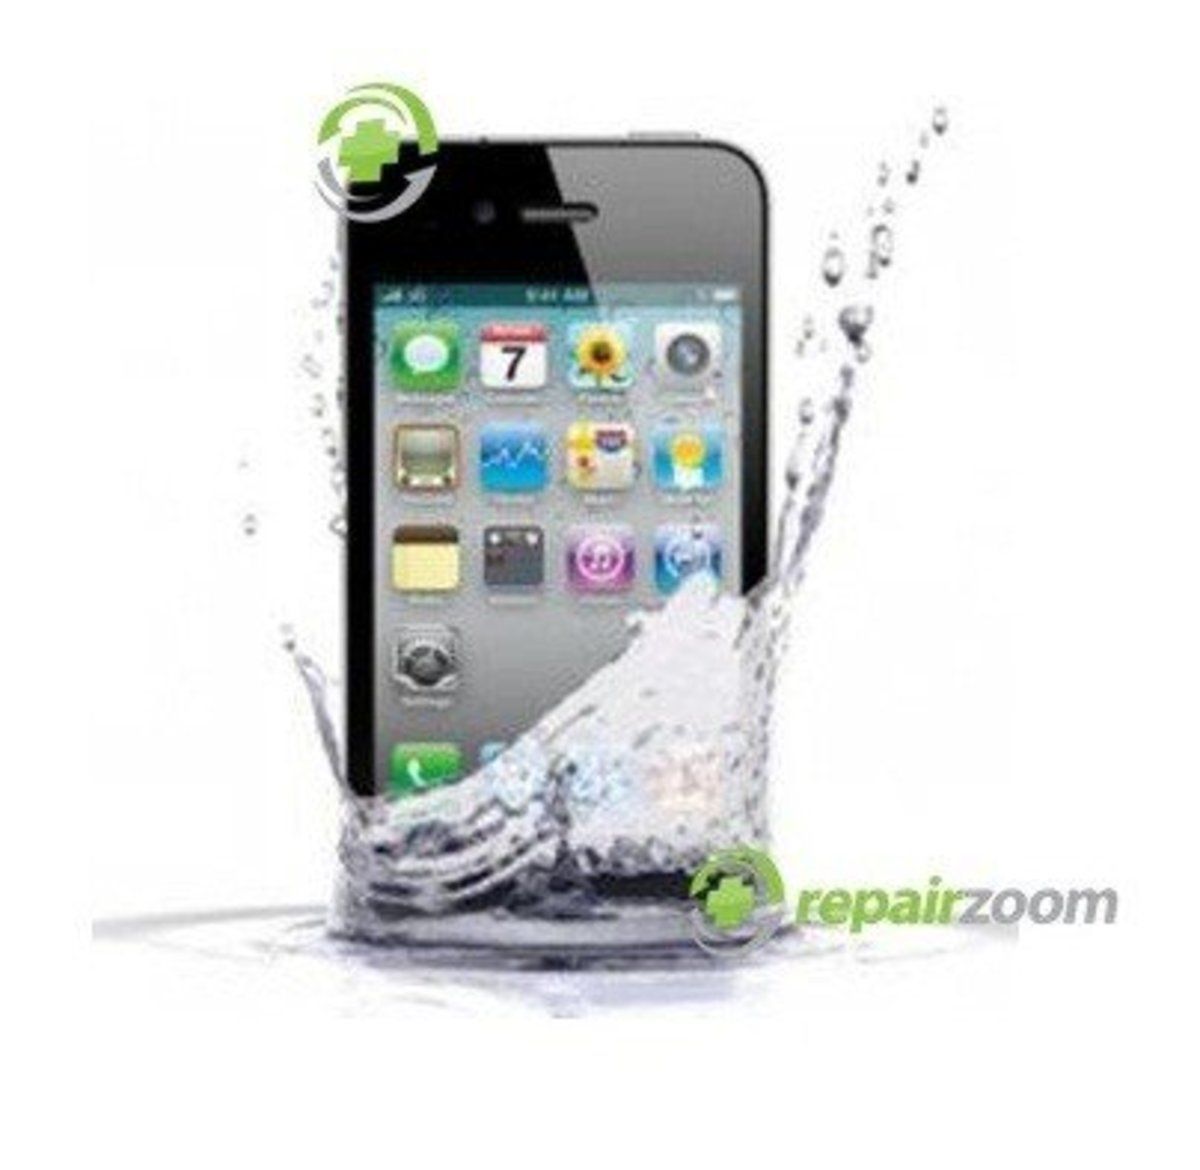 How to Fix Your iPhone's Water Damage in 5 Easy Steps